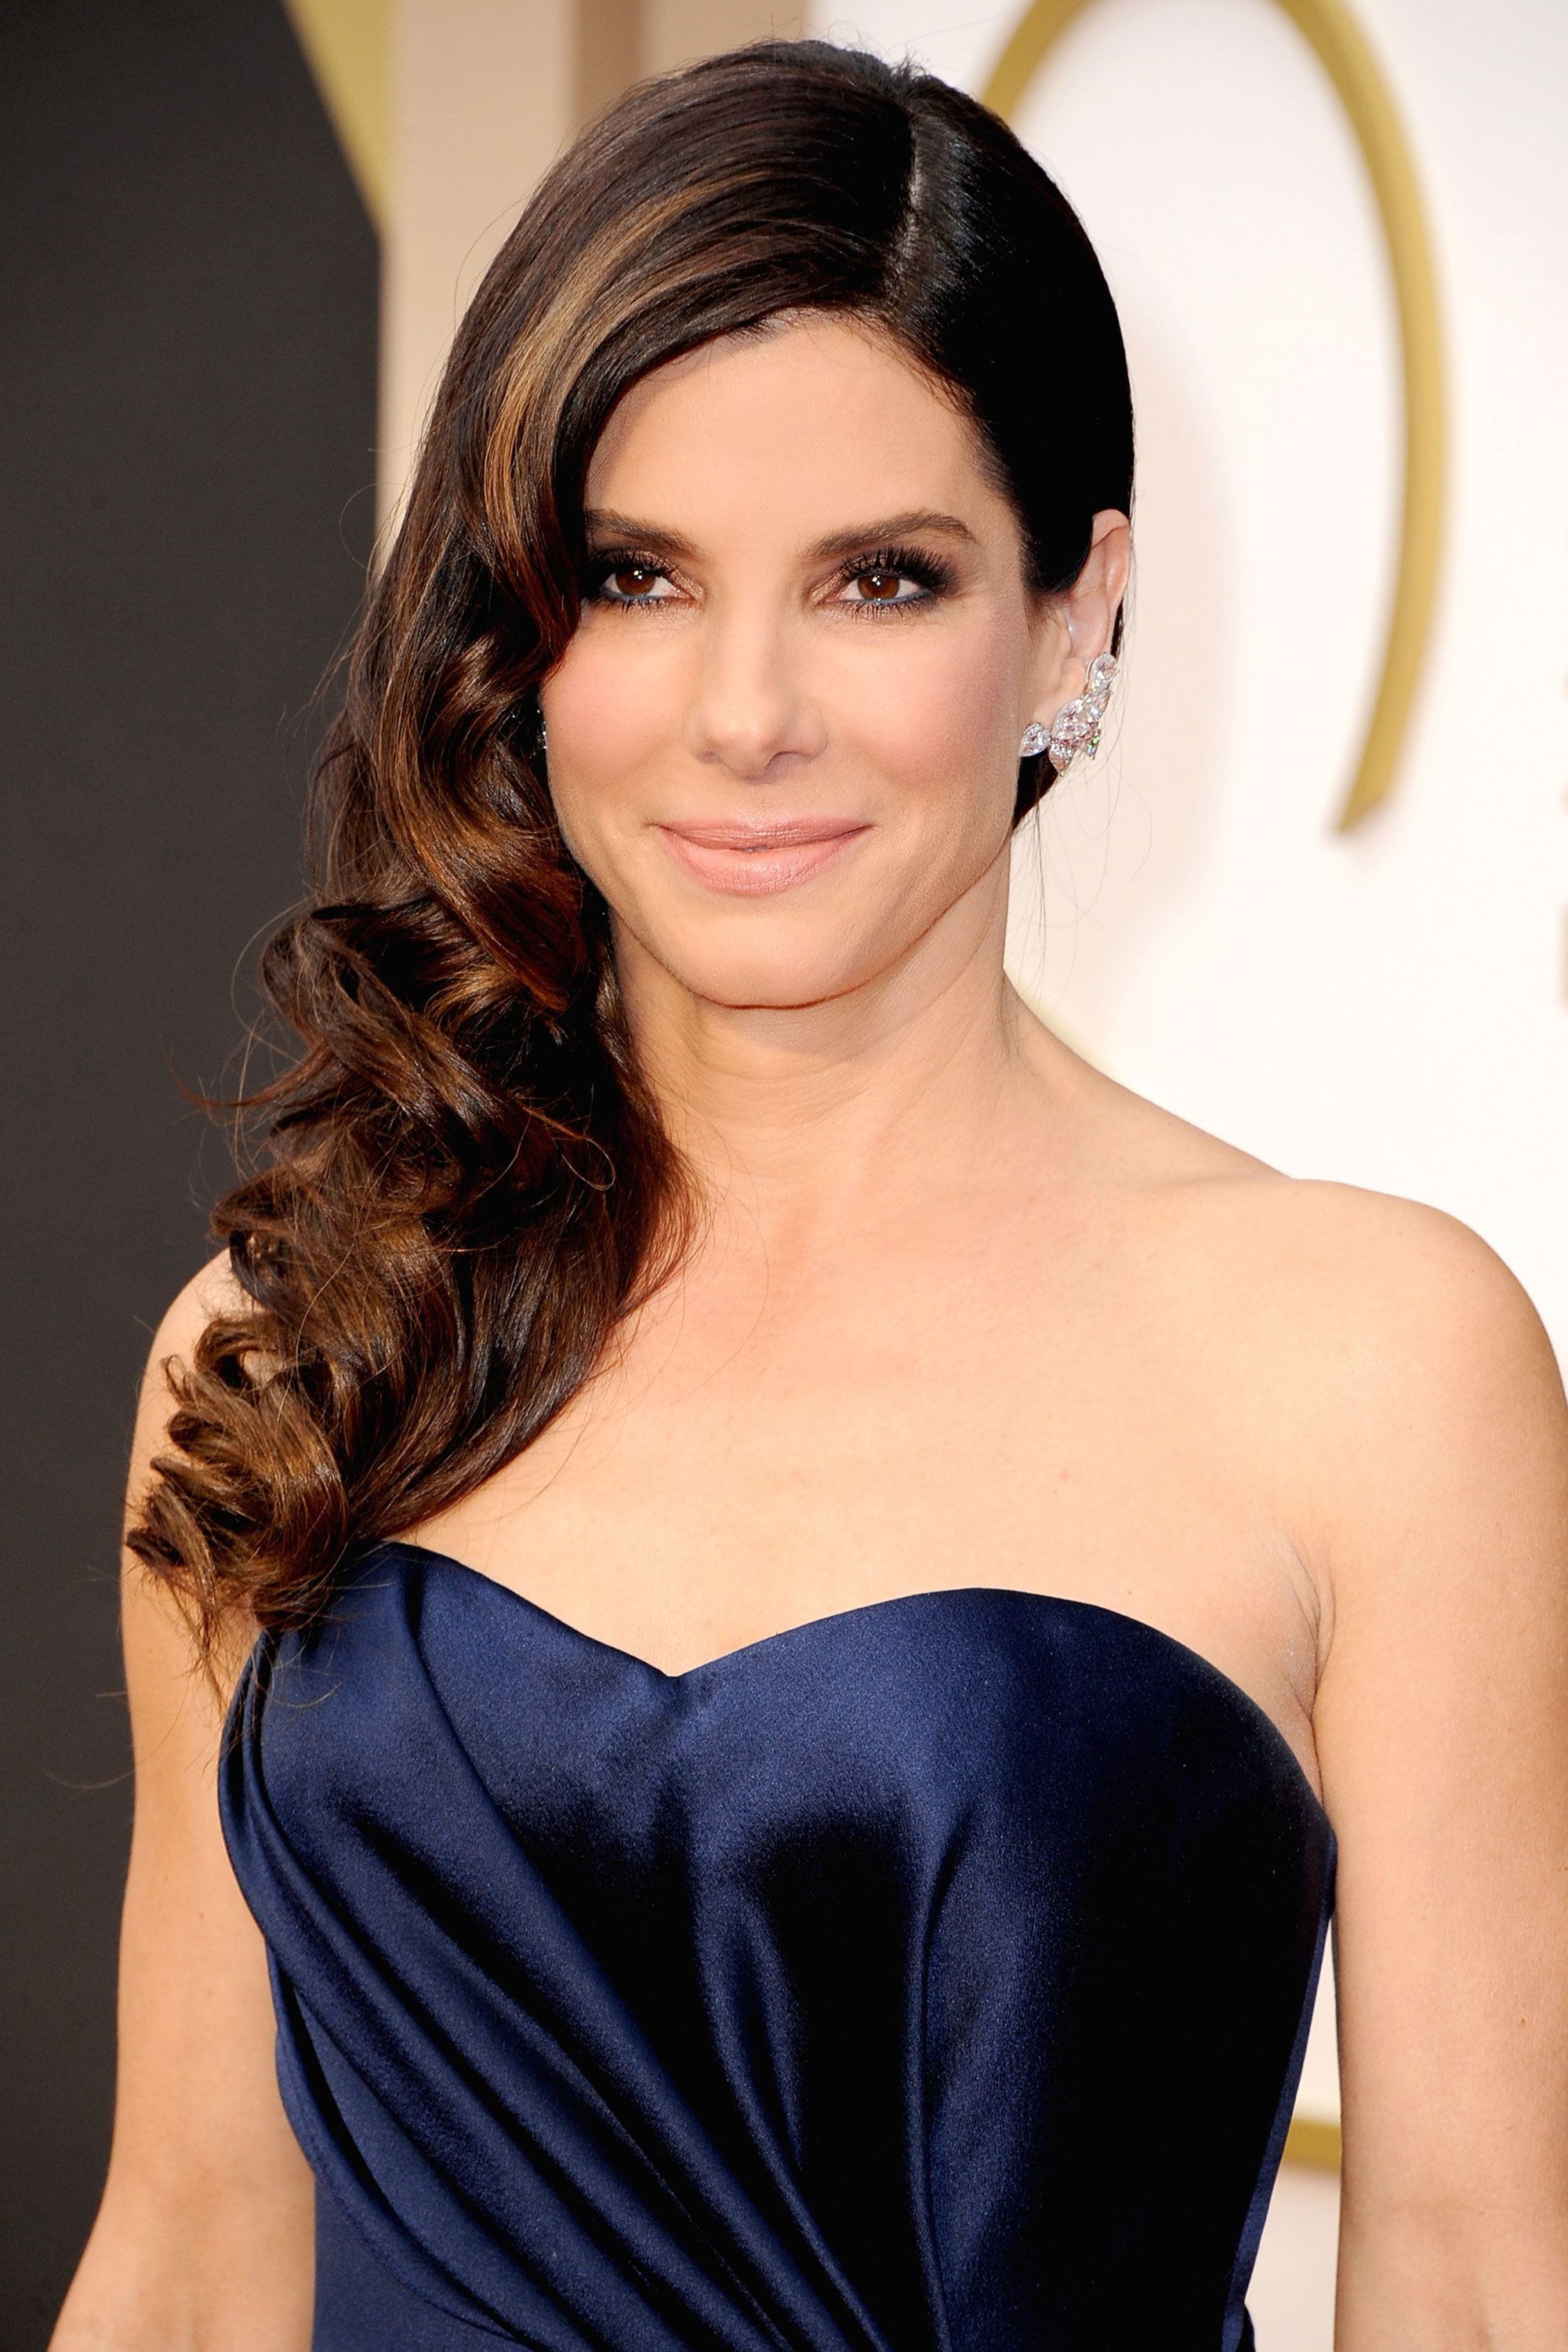 Sandra model nude Sandra Bullock nails the perfect vintage wave and smokey eye with nude lip.  Sheer perfection